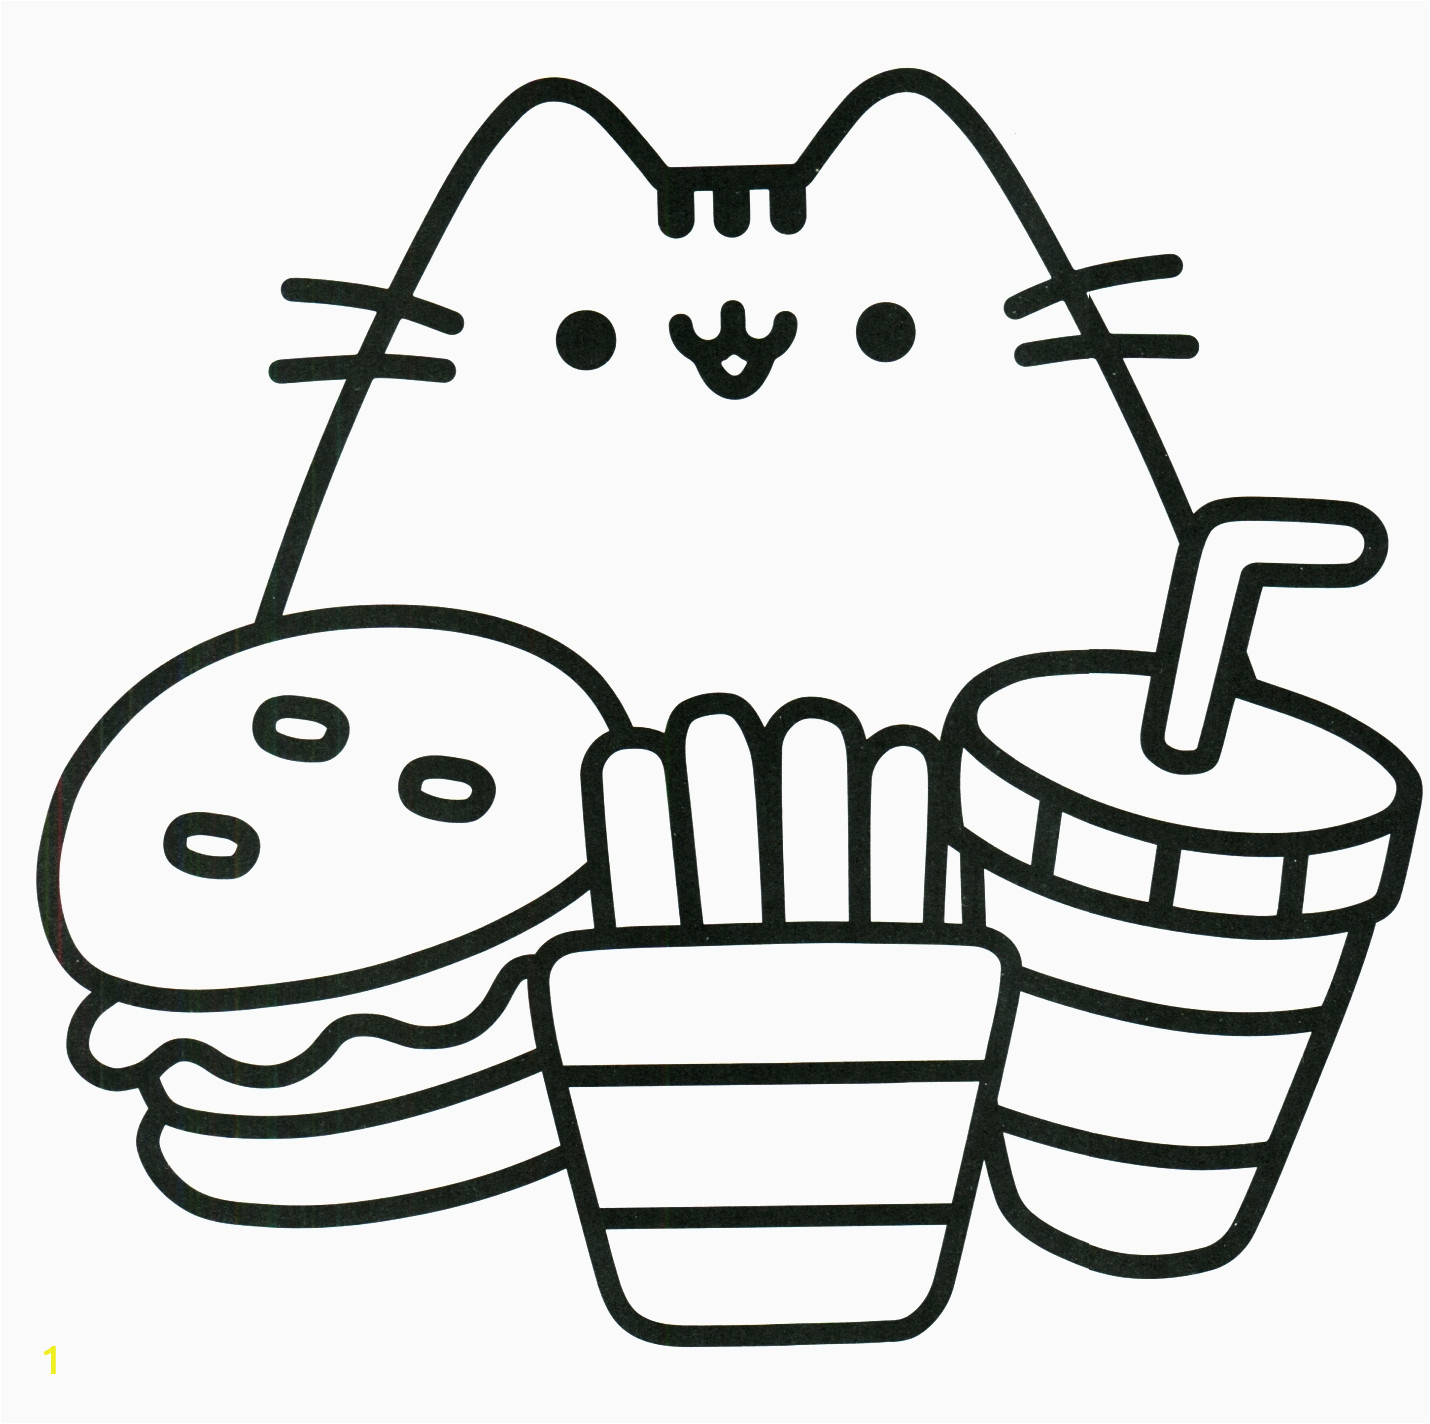 coloring sheets for teens detailed pages awesome free printable hello kitty new cool od dog at saglik me colouring games girls easy colored